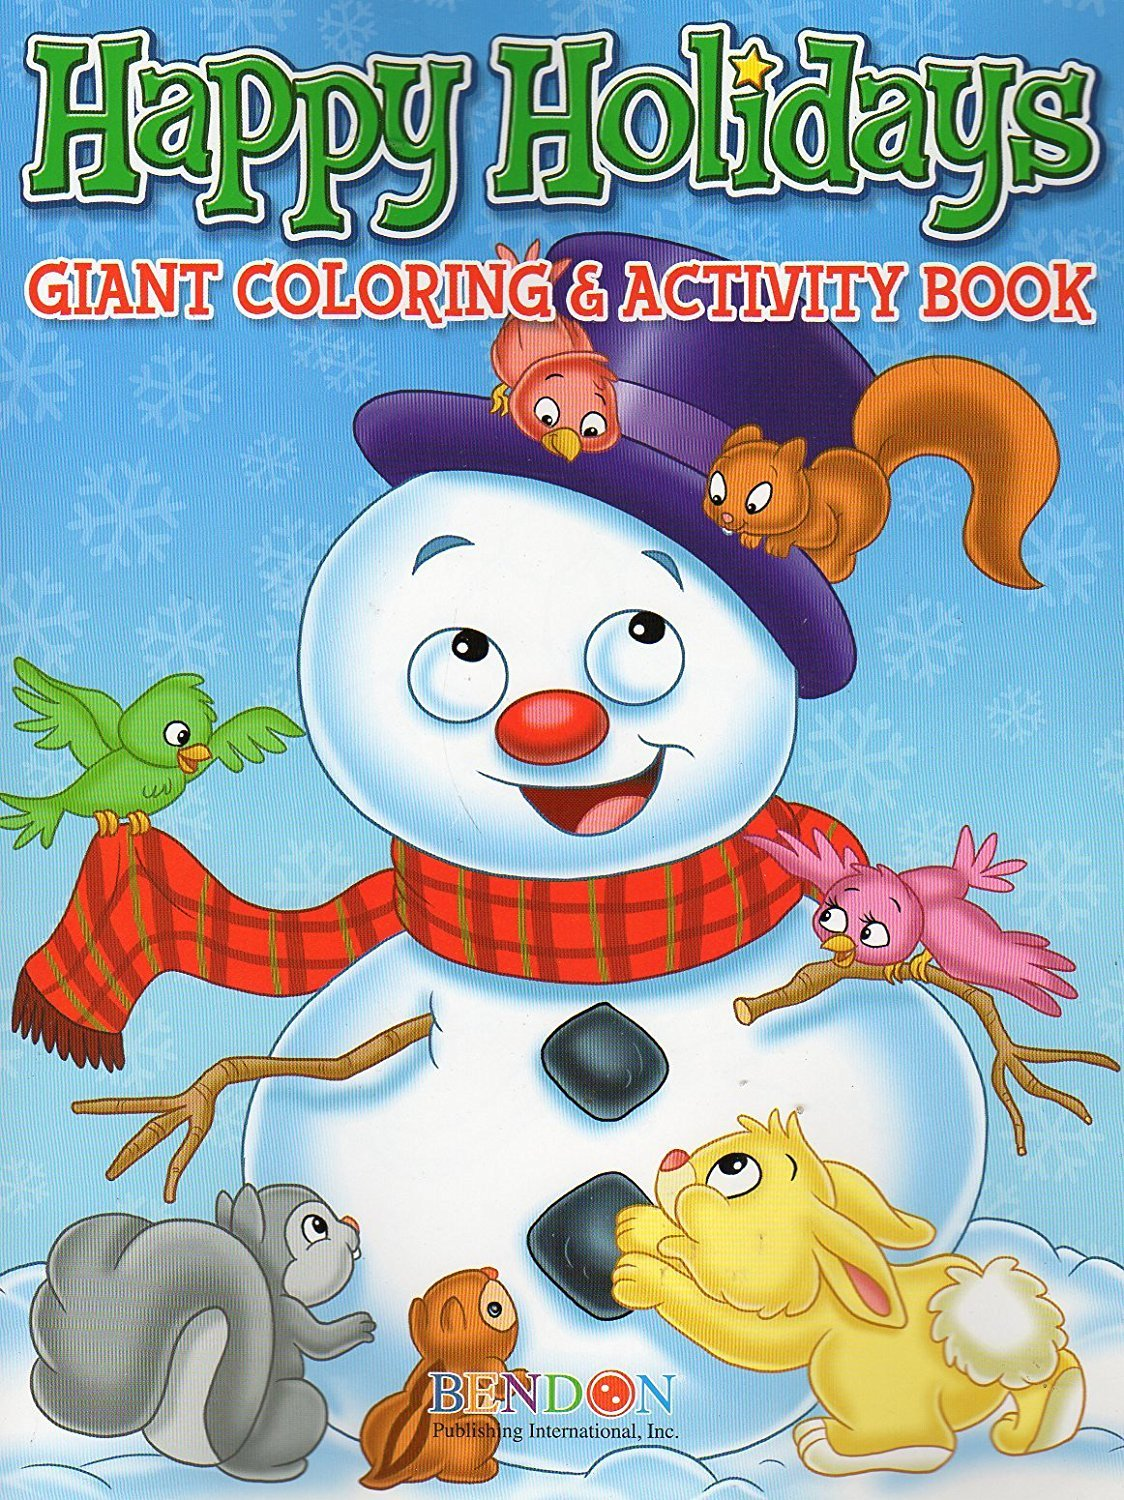 Happy Holidays Giant Coloring & Activity Book -v2